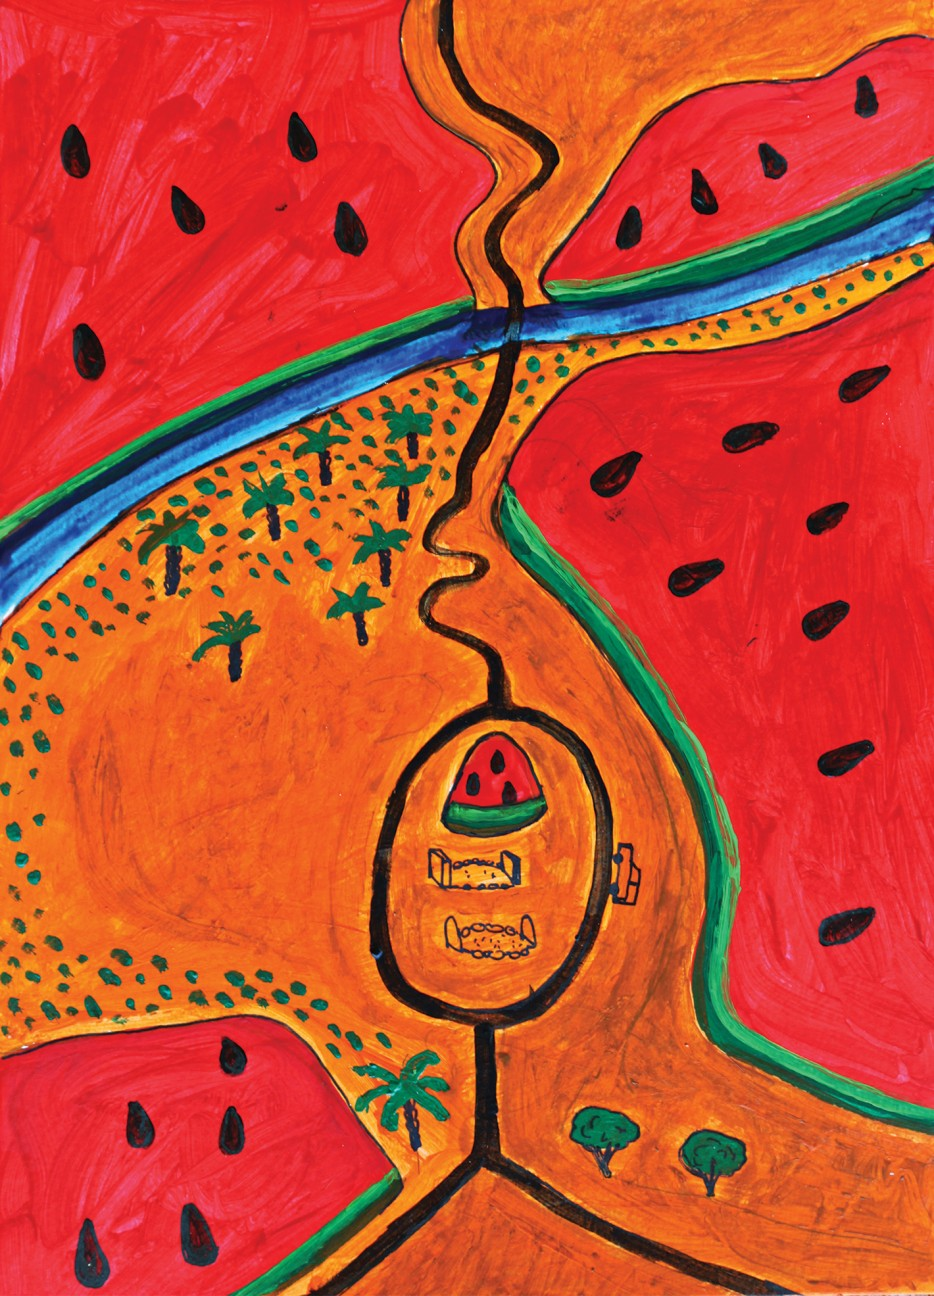 The Comparative Journey, The Watermelon Series Image